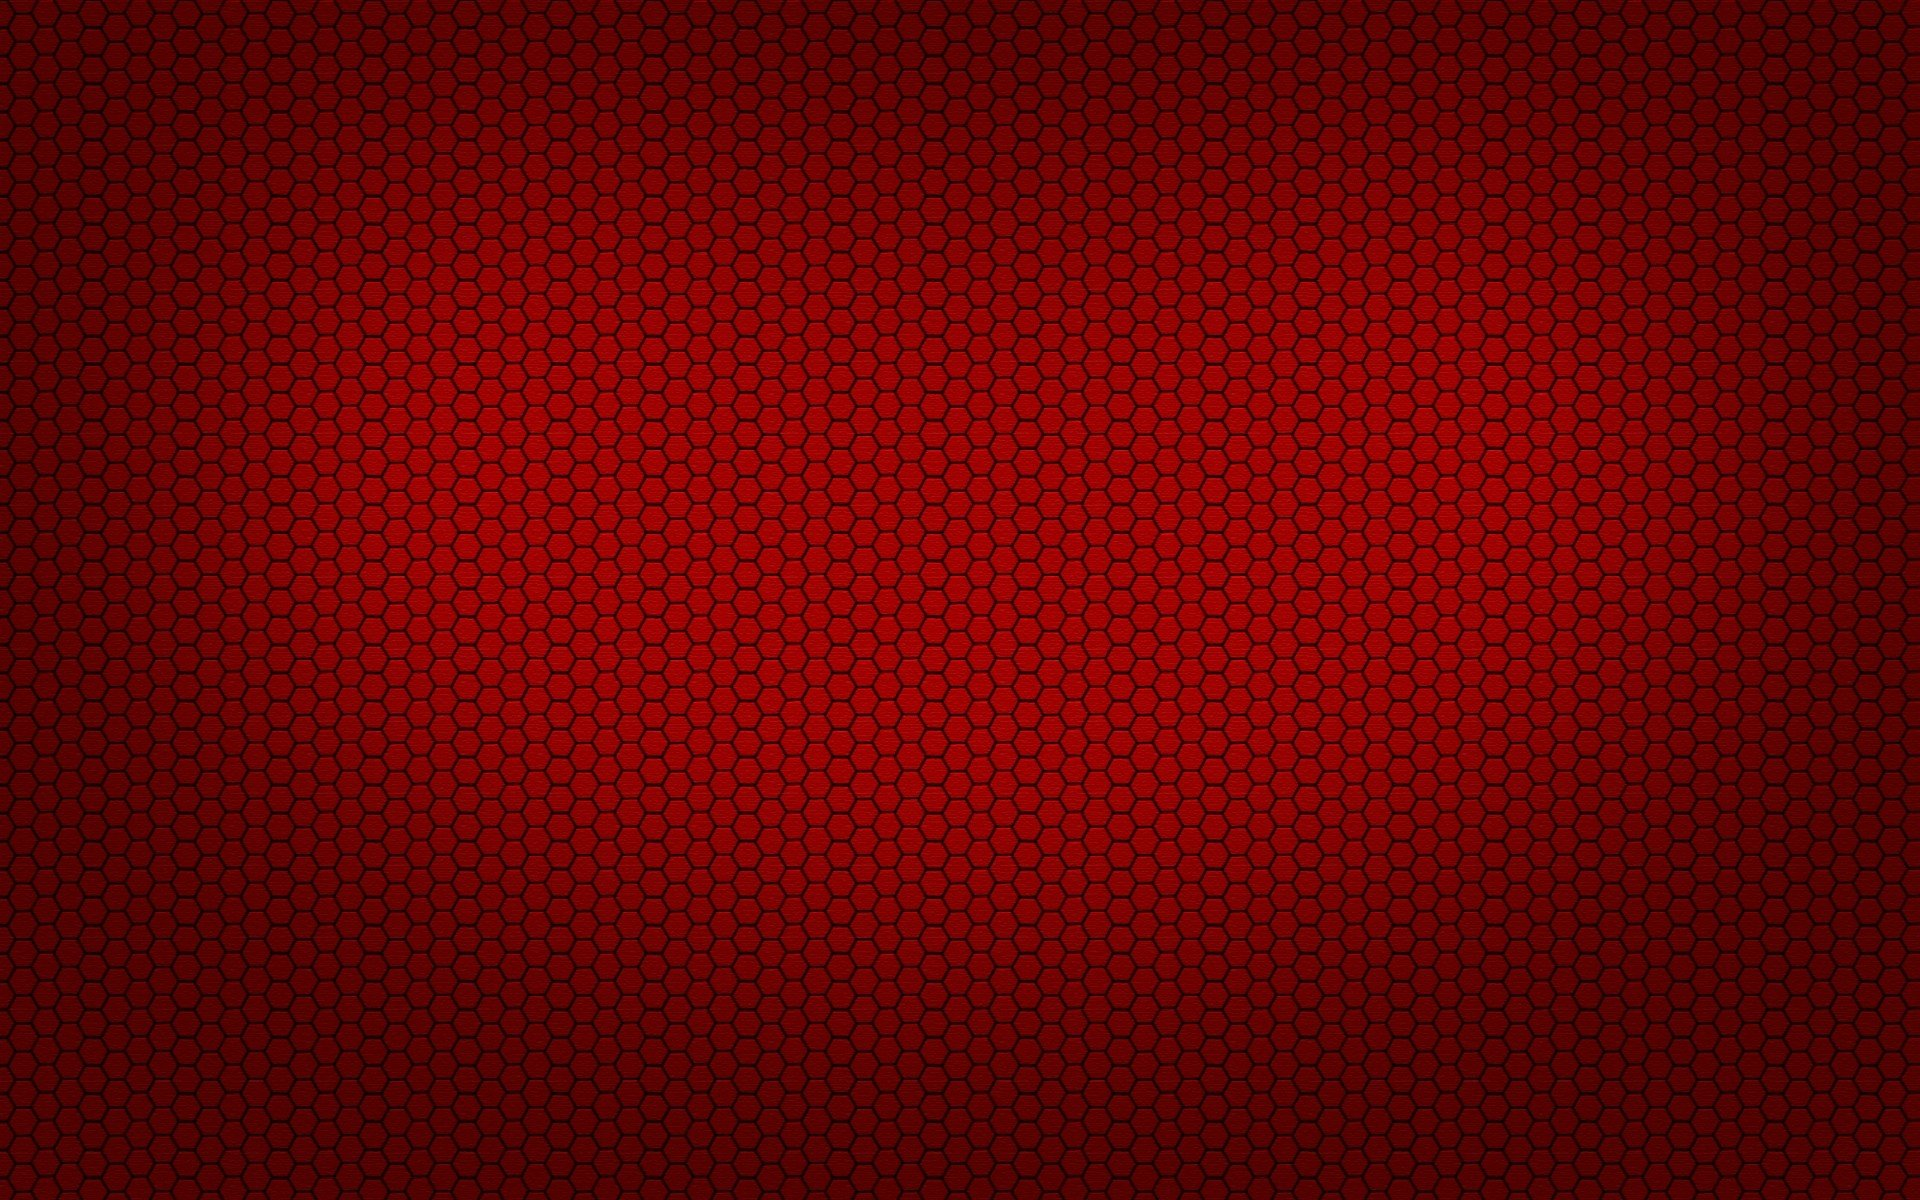 Dark Red Plain Background Daily Pics Update HD Wallpapers Download 1920x1200